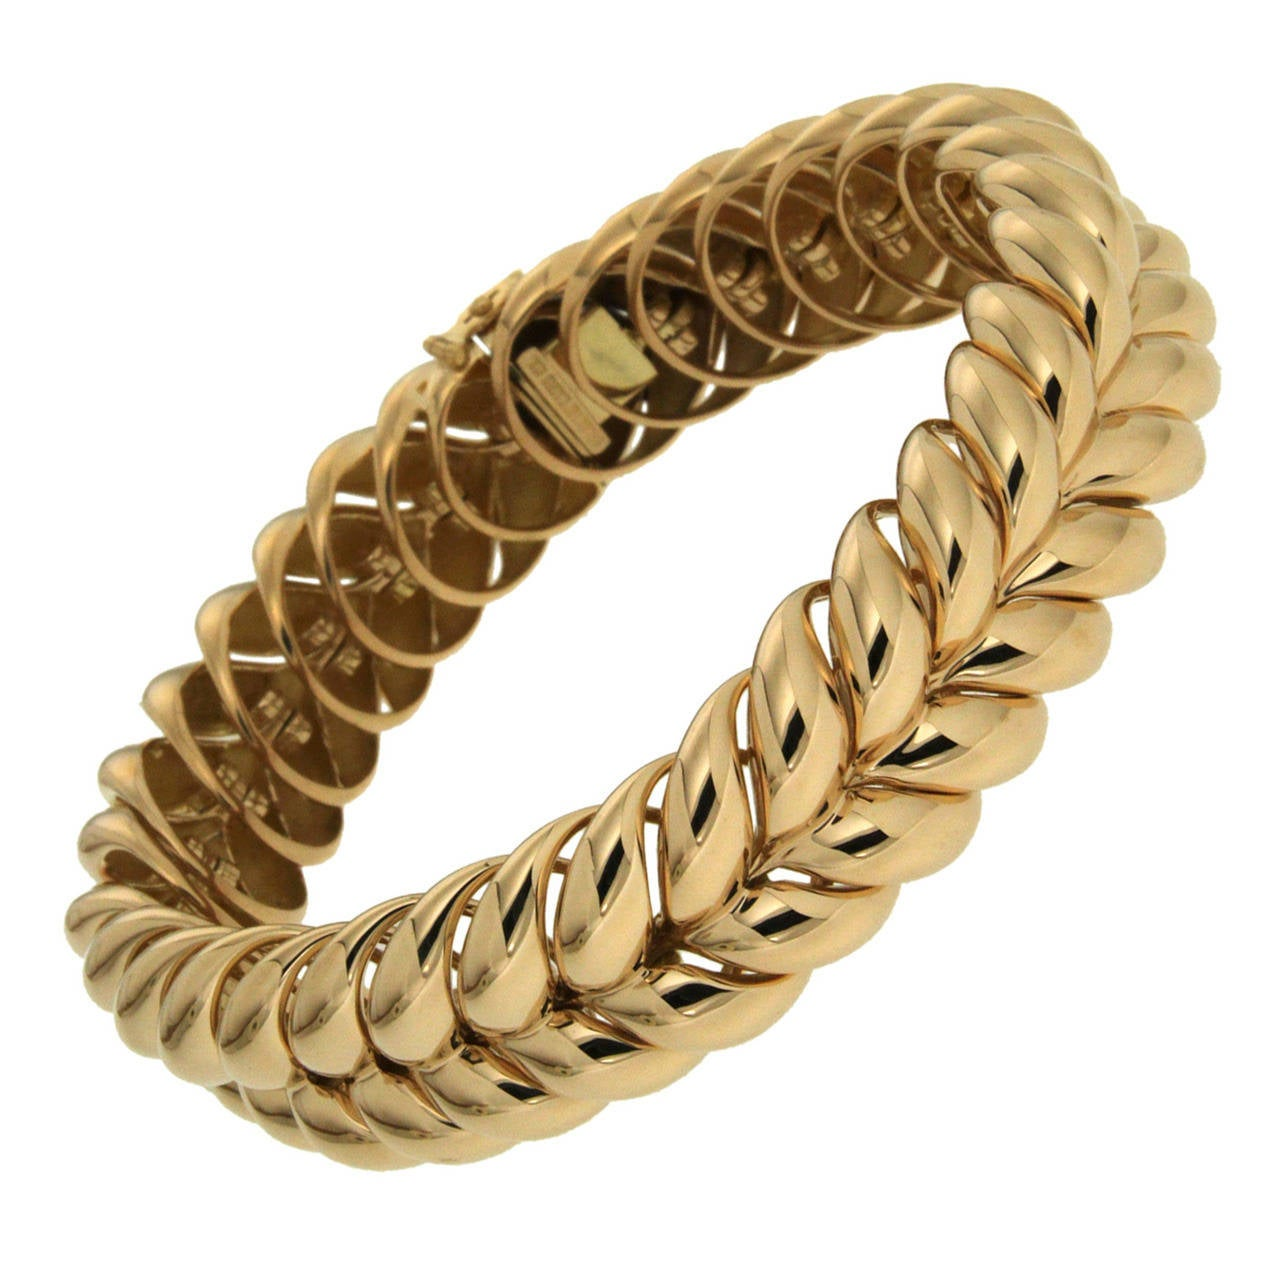 good lko women red weaving rope gift hand item luck and arrive style man for new bracelet lucky